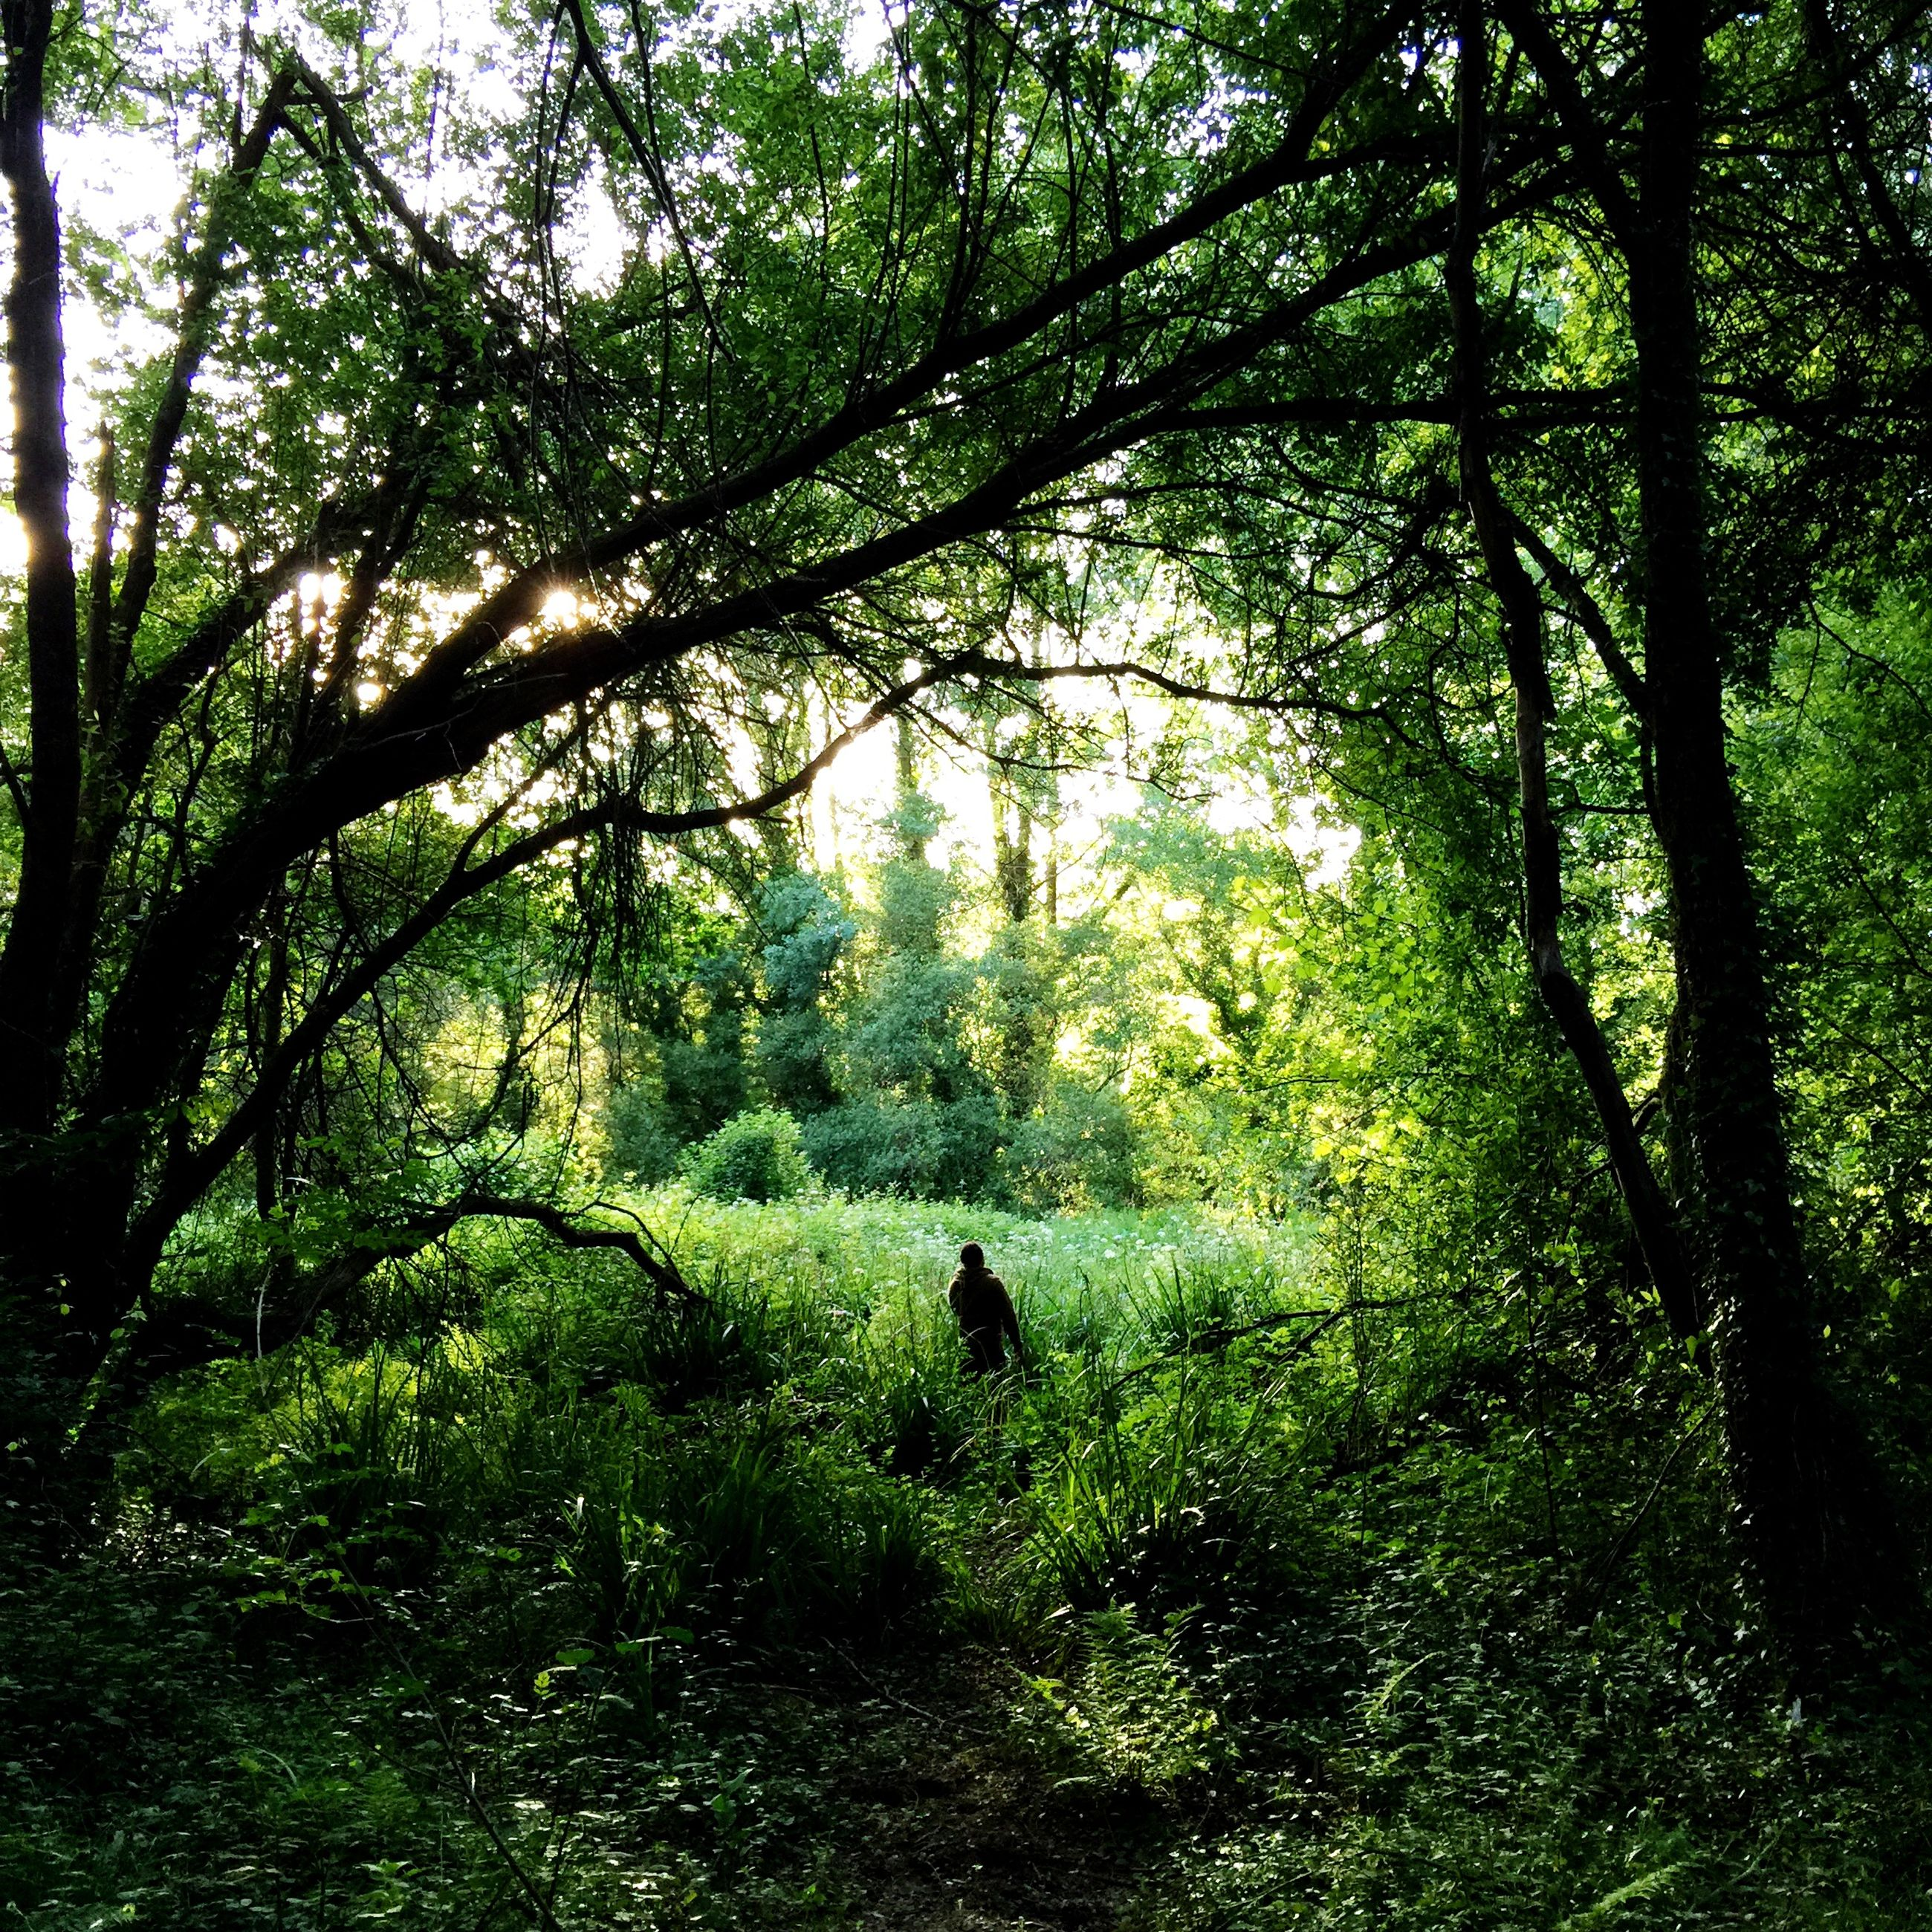 tree, green color, growth, forest, branch, tranquility, nature, lush foliage, tree trunk, grass, leisure activity, tranquil scene, men, beauty in nature, lifestyles, walking, full length, green